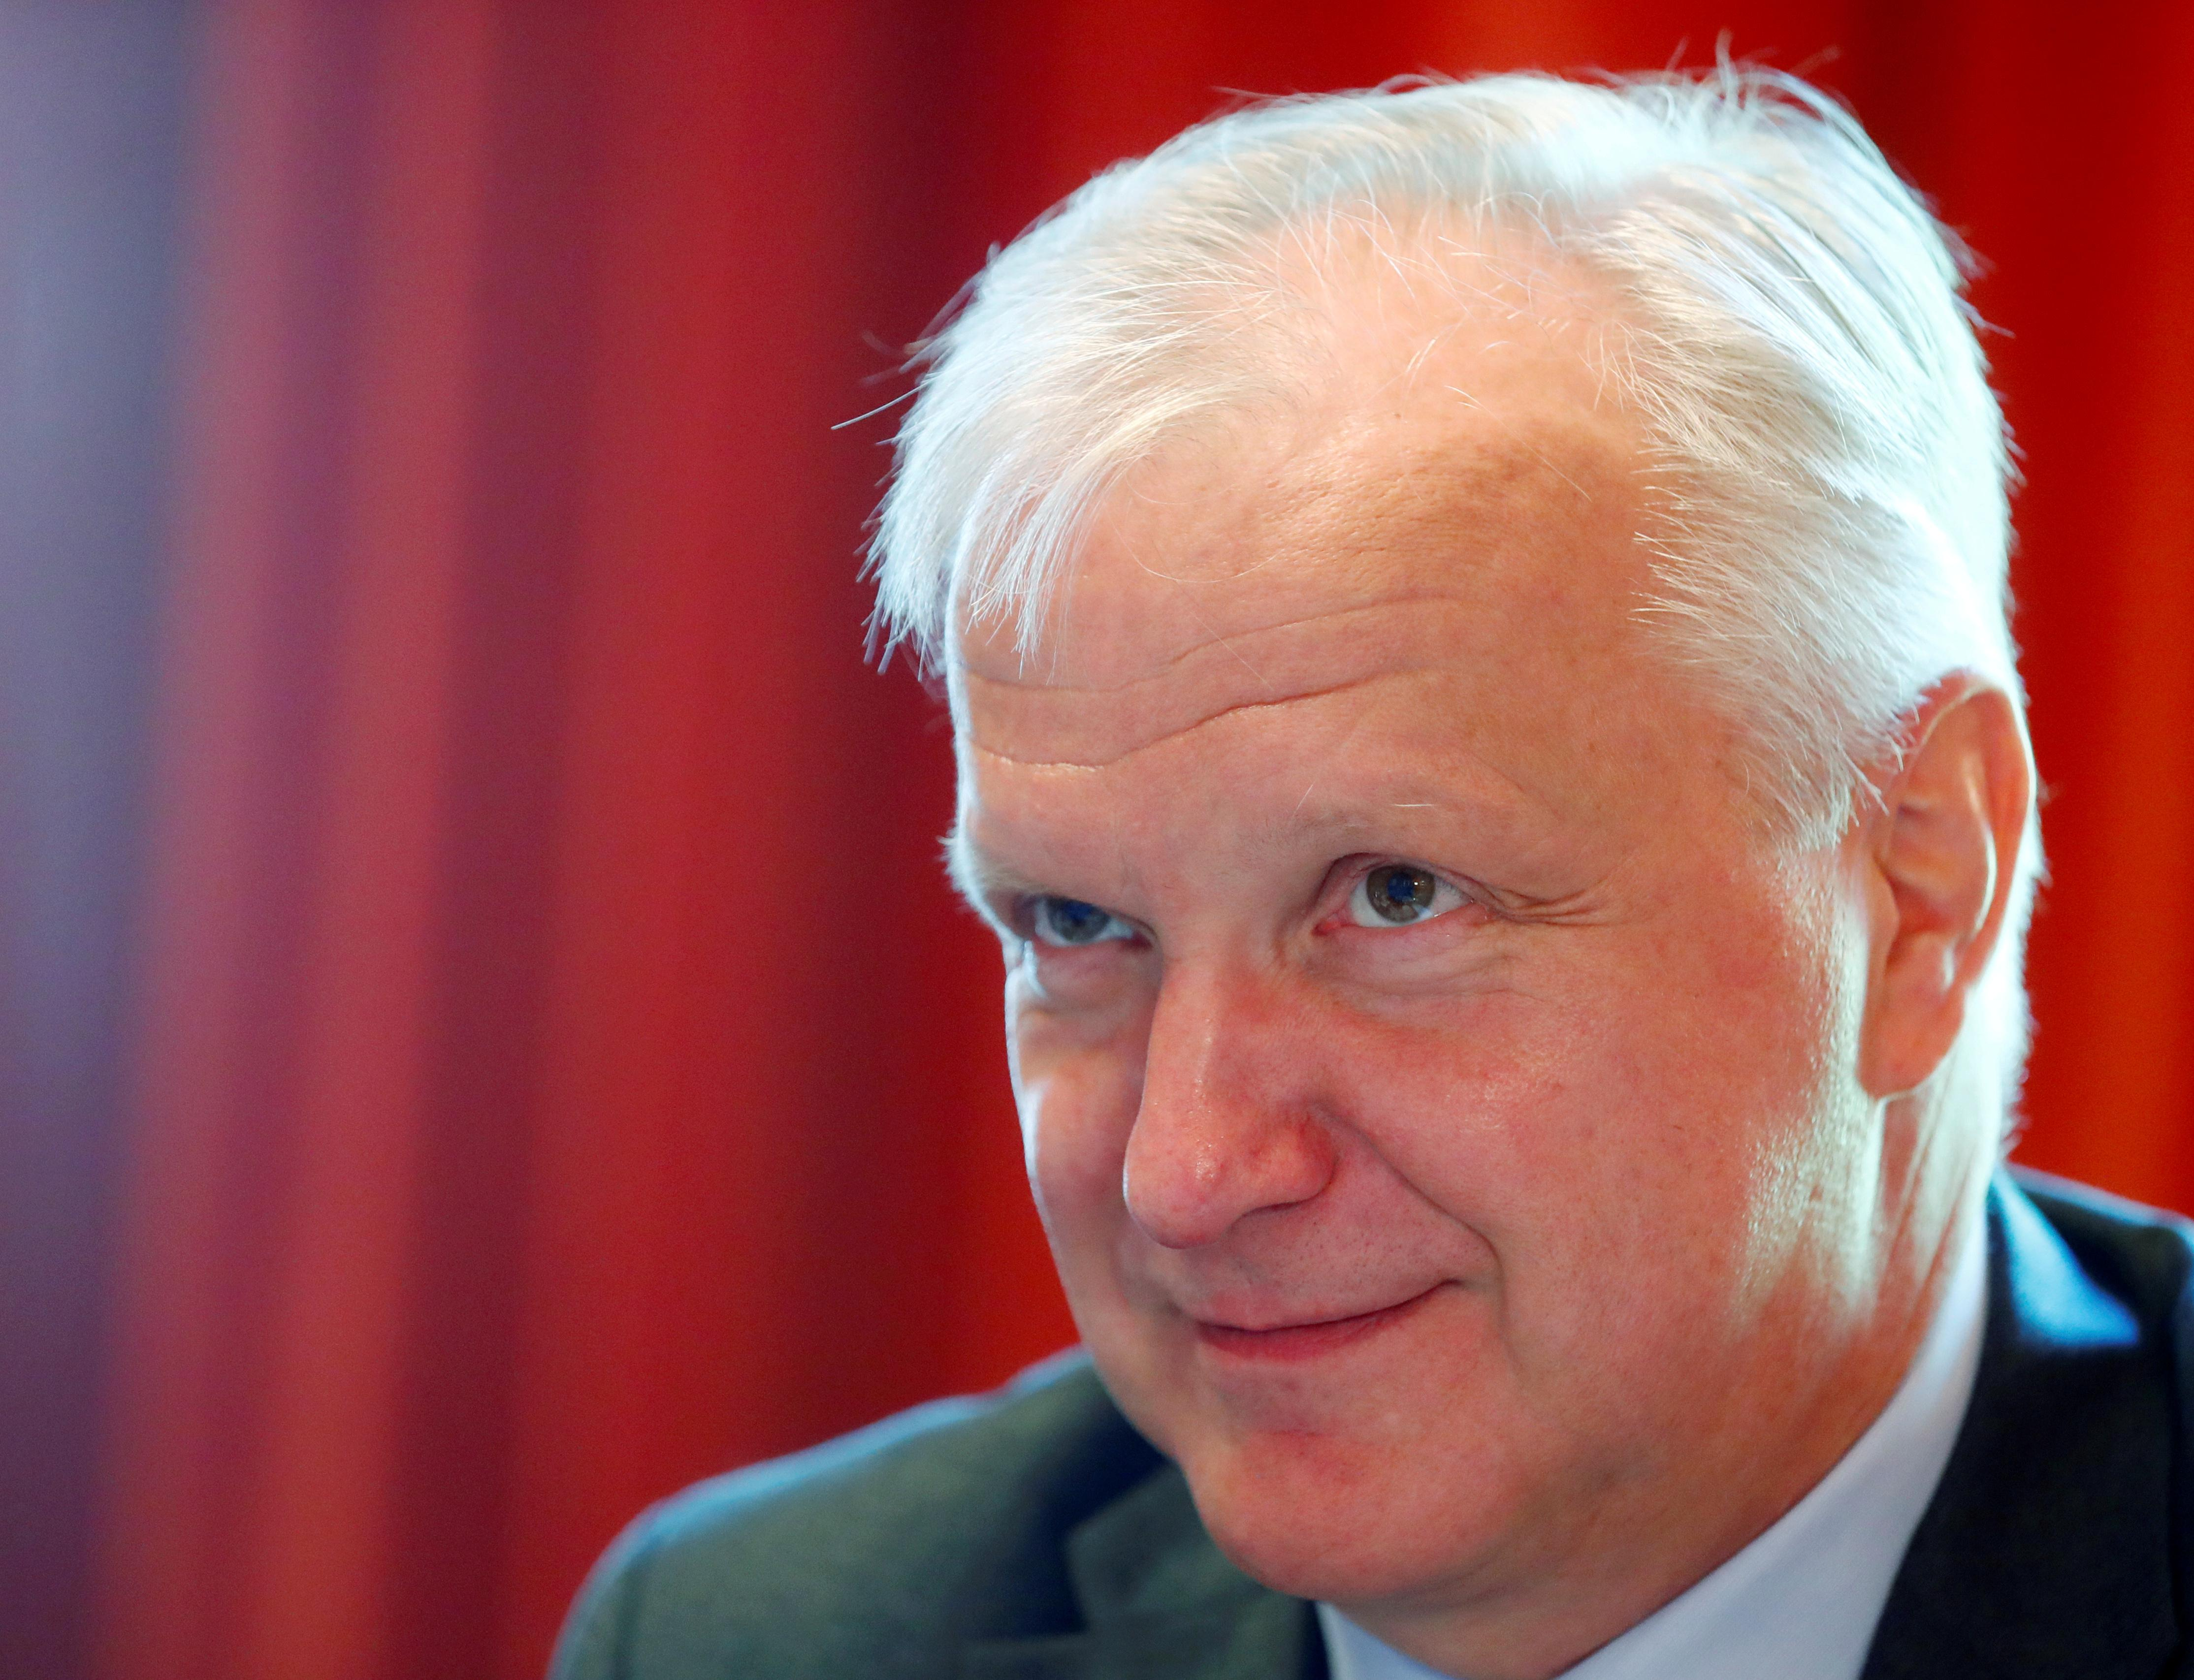 ECB determined to act on medium-term inflation outlook: Rehn